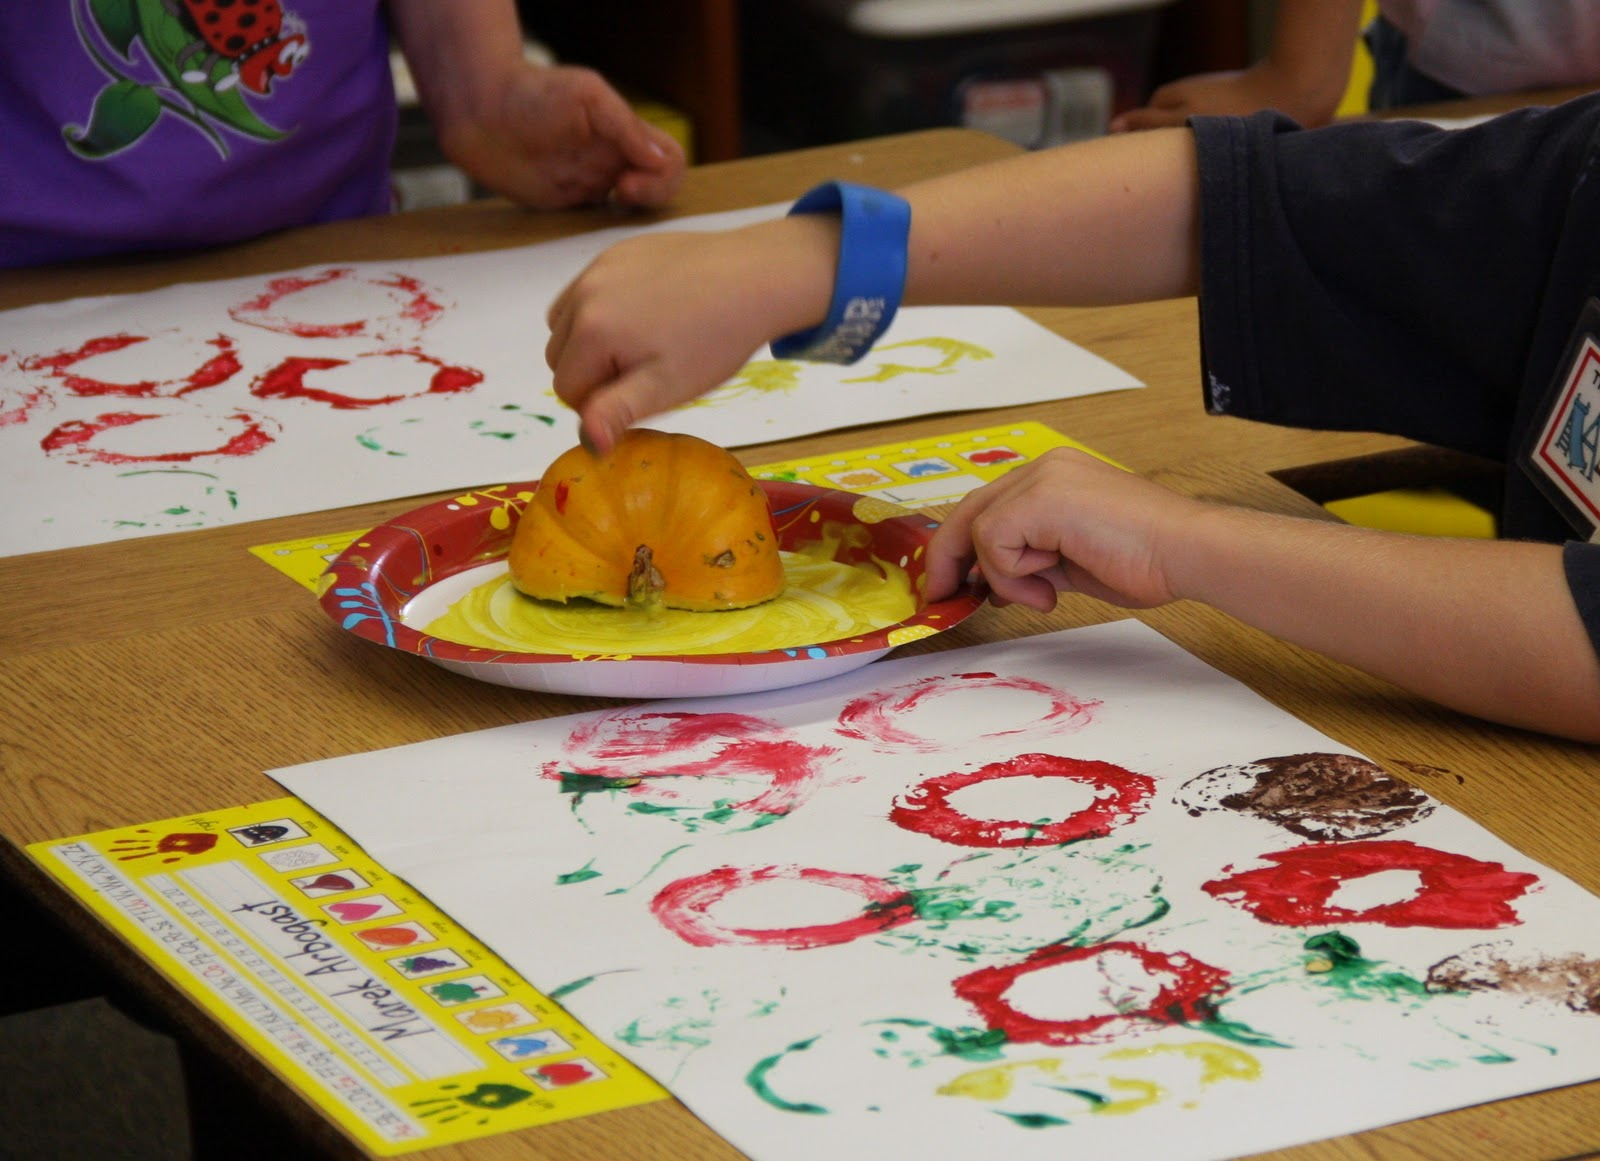 Kindergarten Rocks Stamping Art With Fruits And Veggies